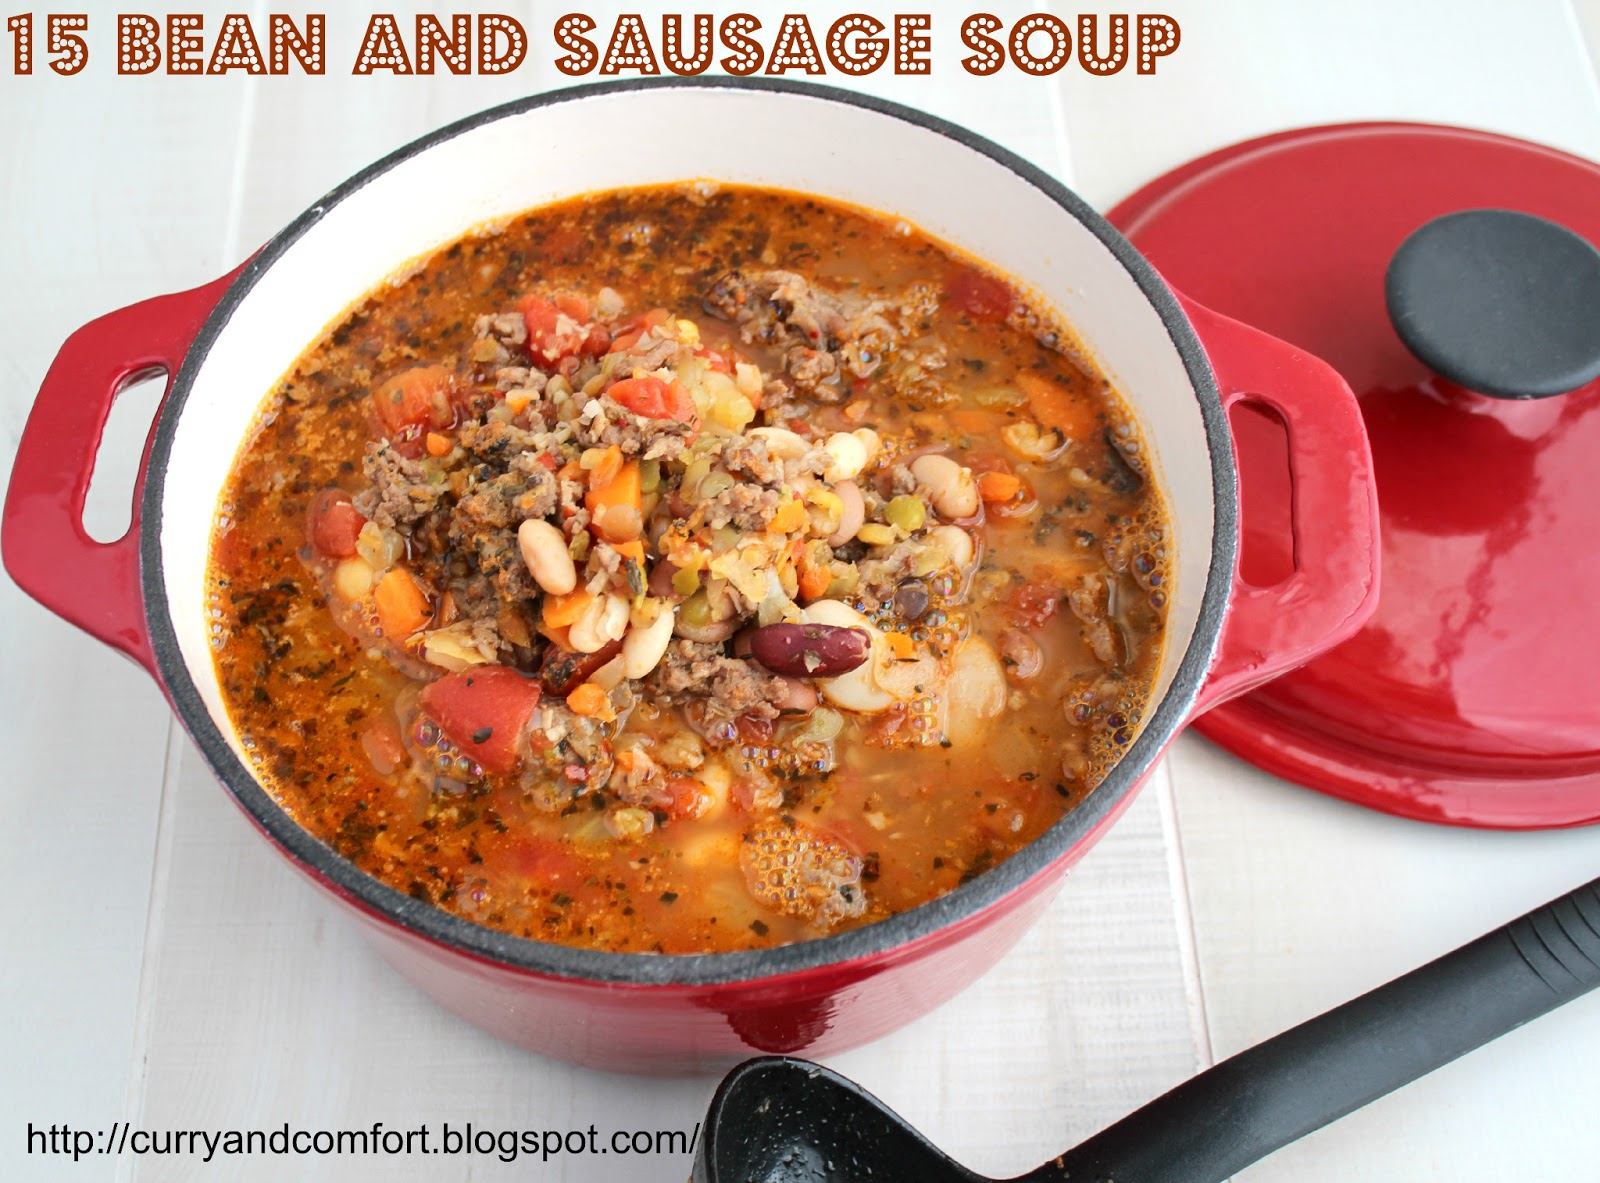 Kitchen Simmer: 15 Bean and Sausage Soup